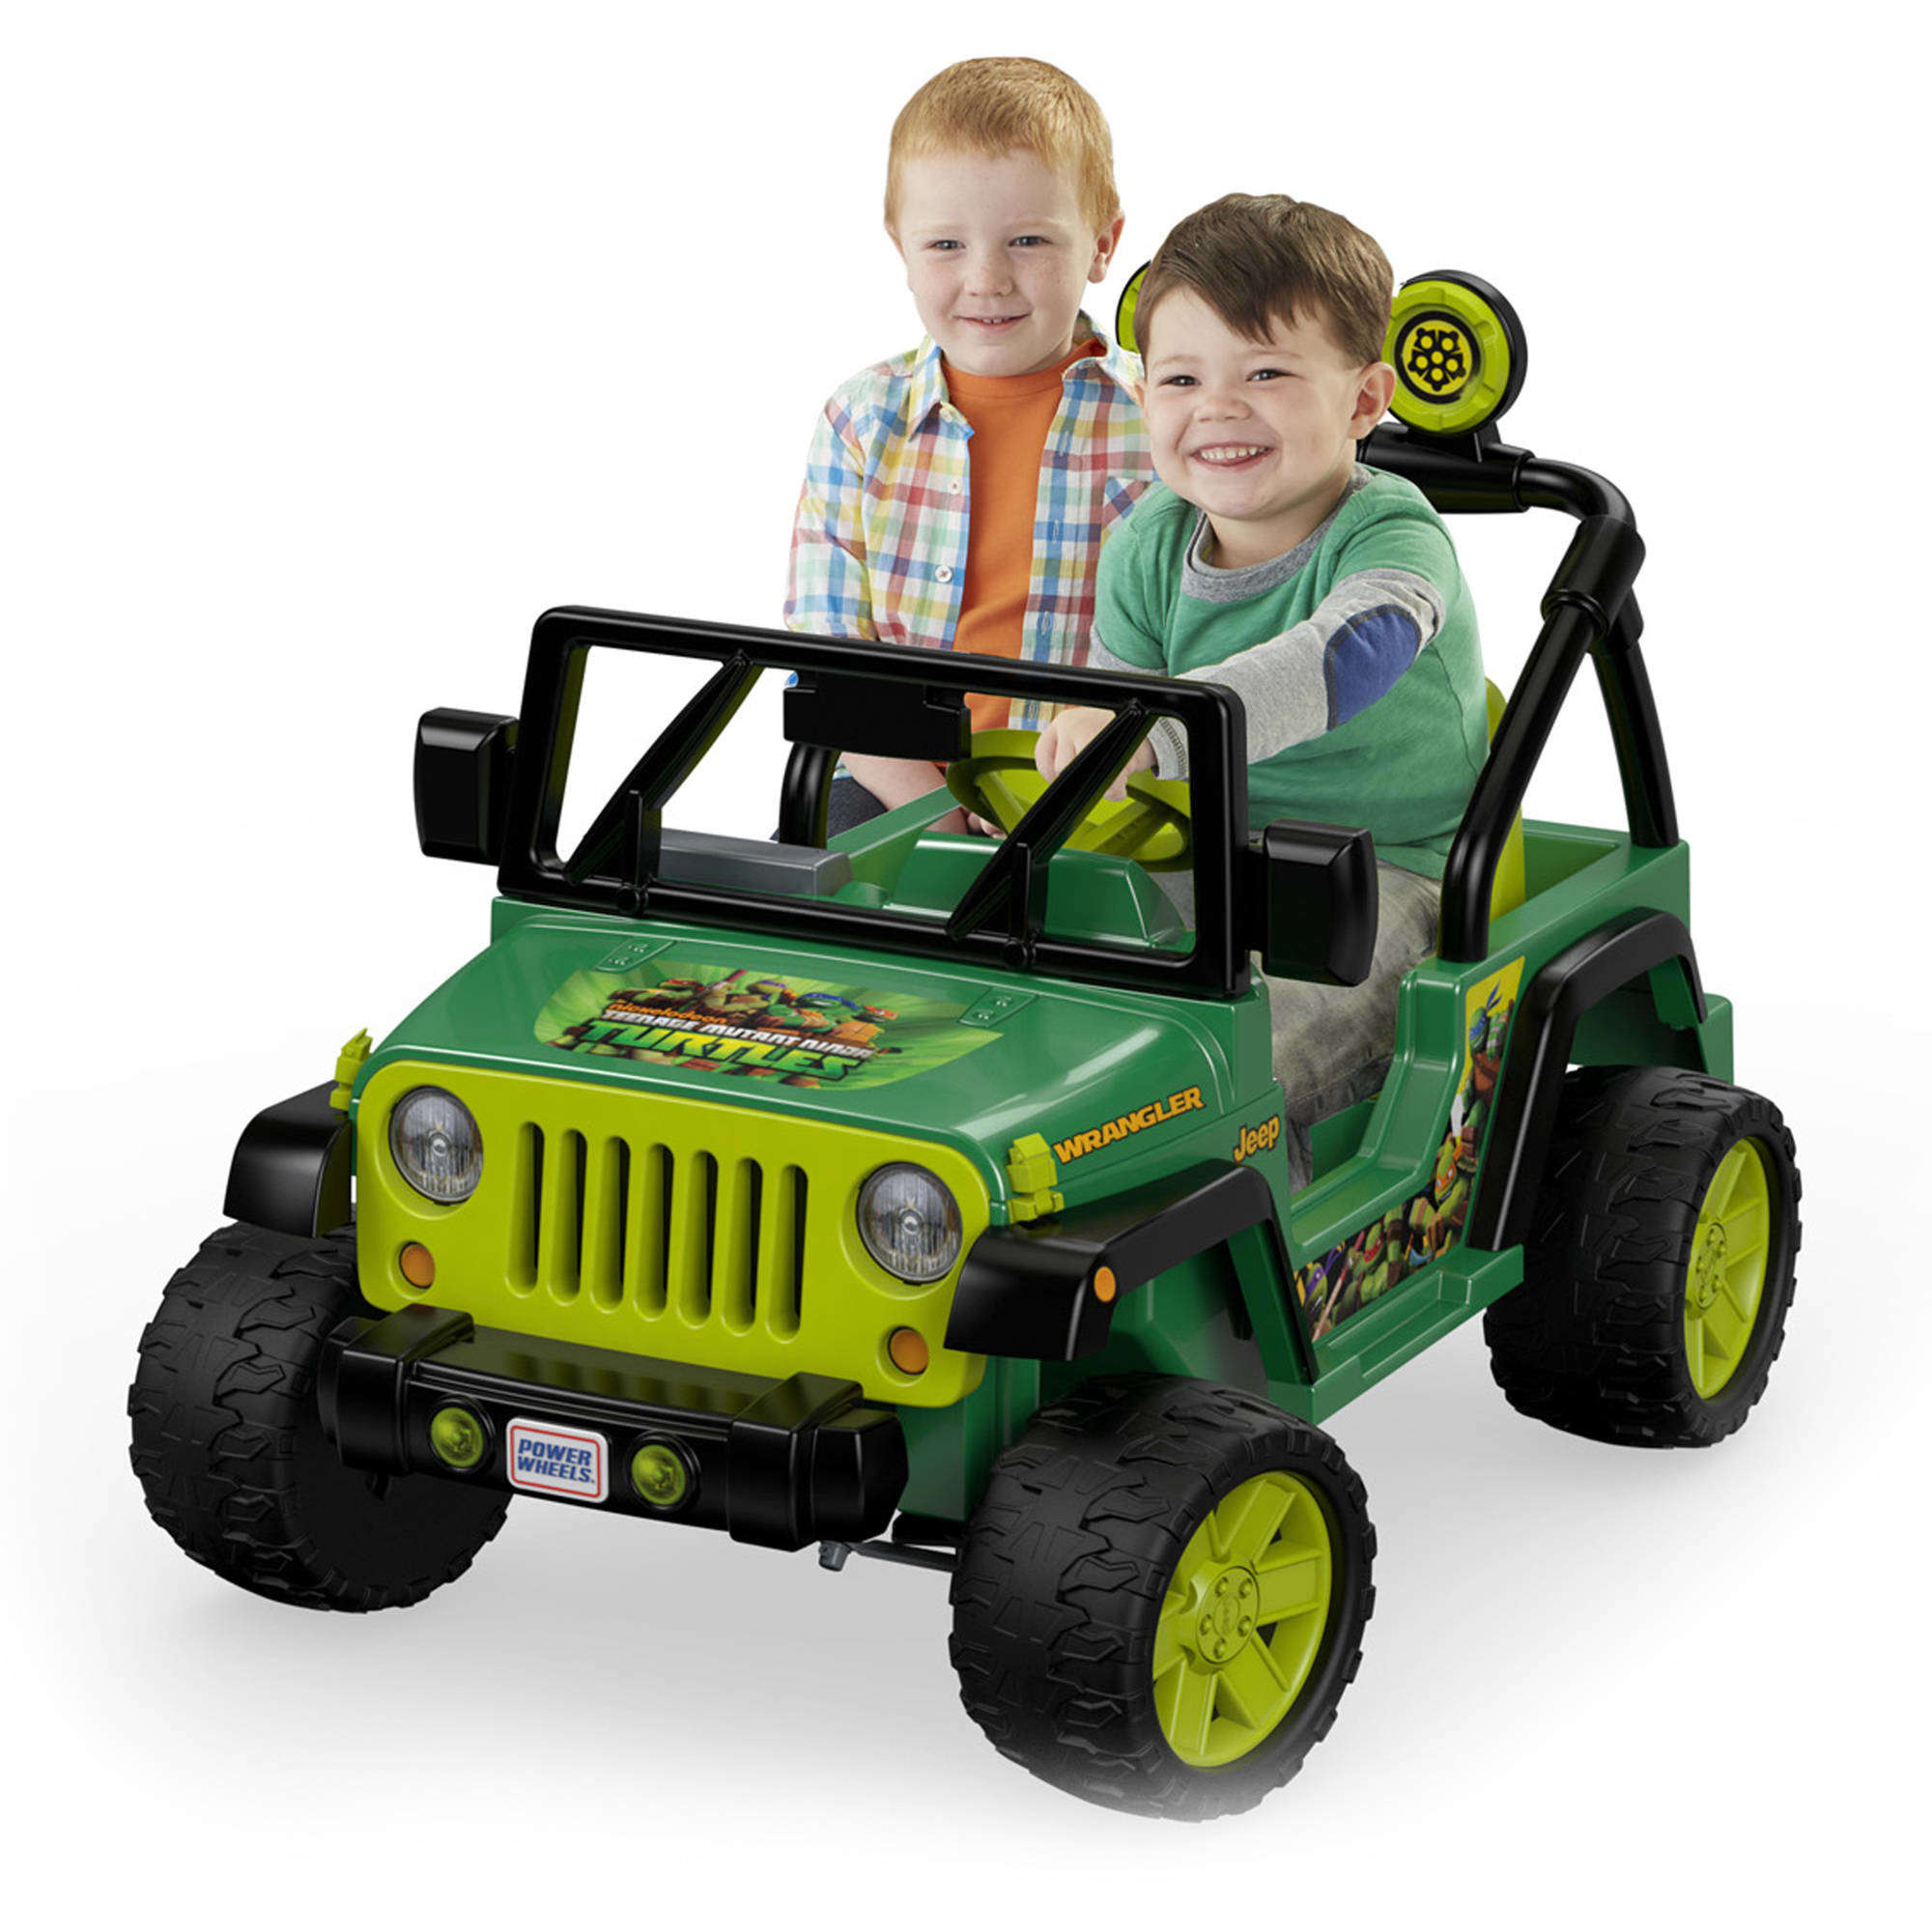 Power Wheels Nickelodeon Teenage Mutant Ninja Turtles Jeep Wrangler 12V Battery-Powered Ride-On